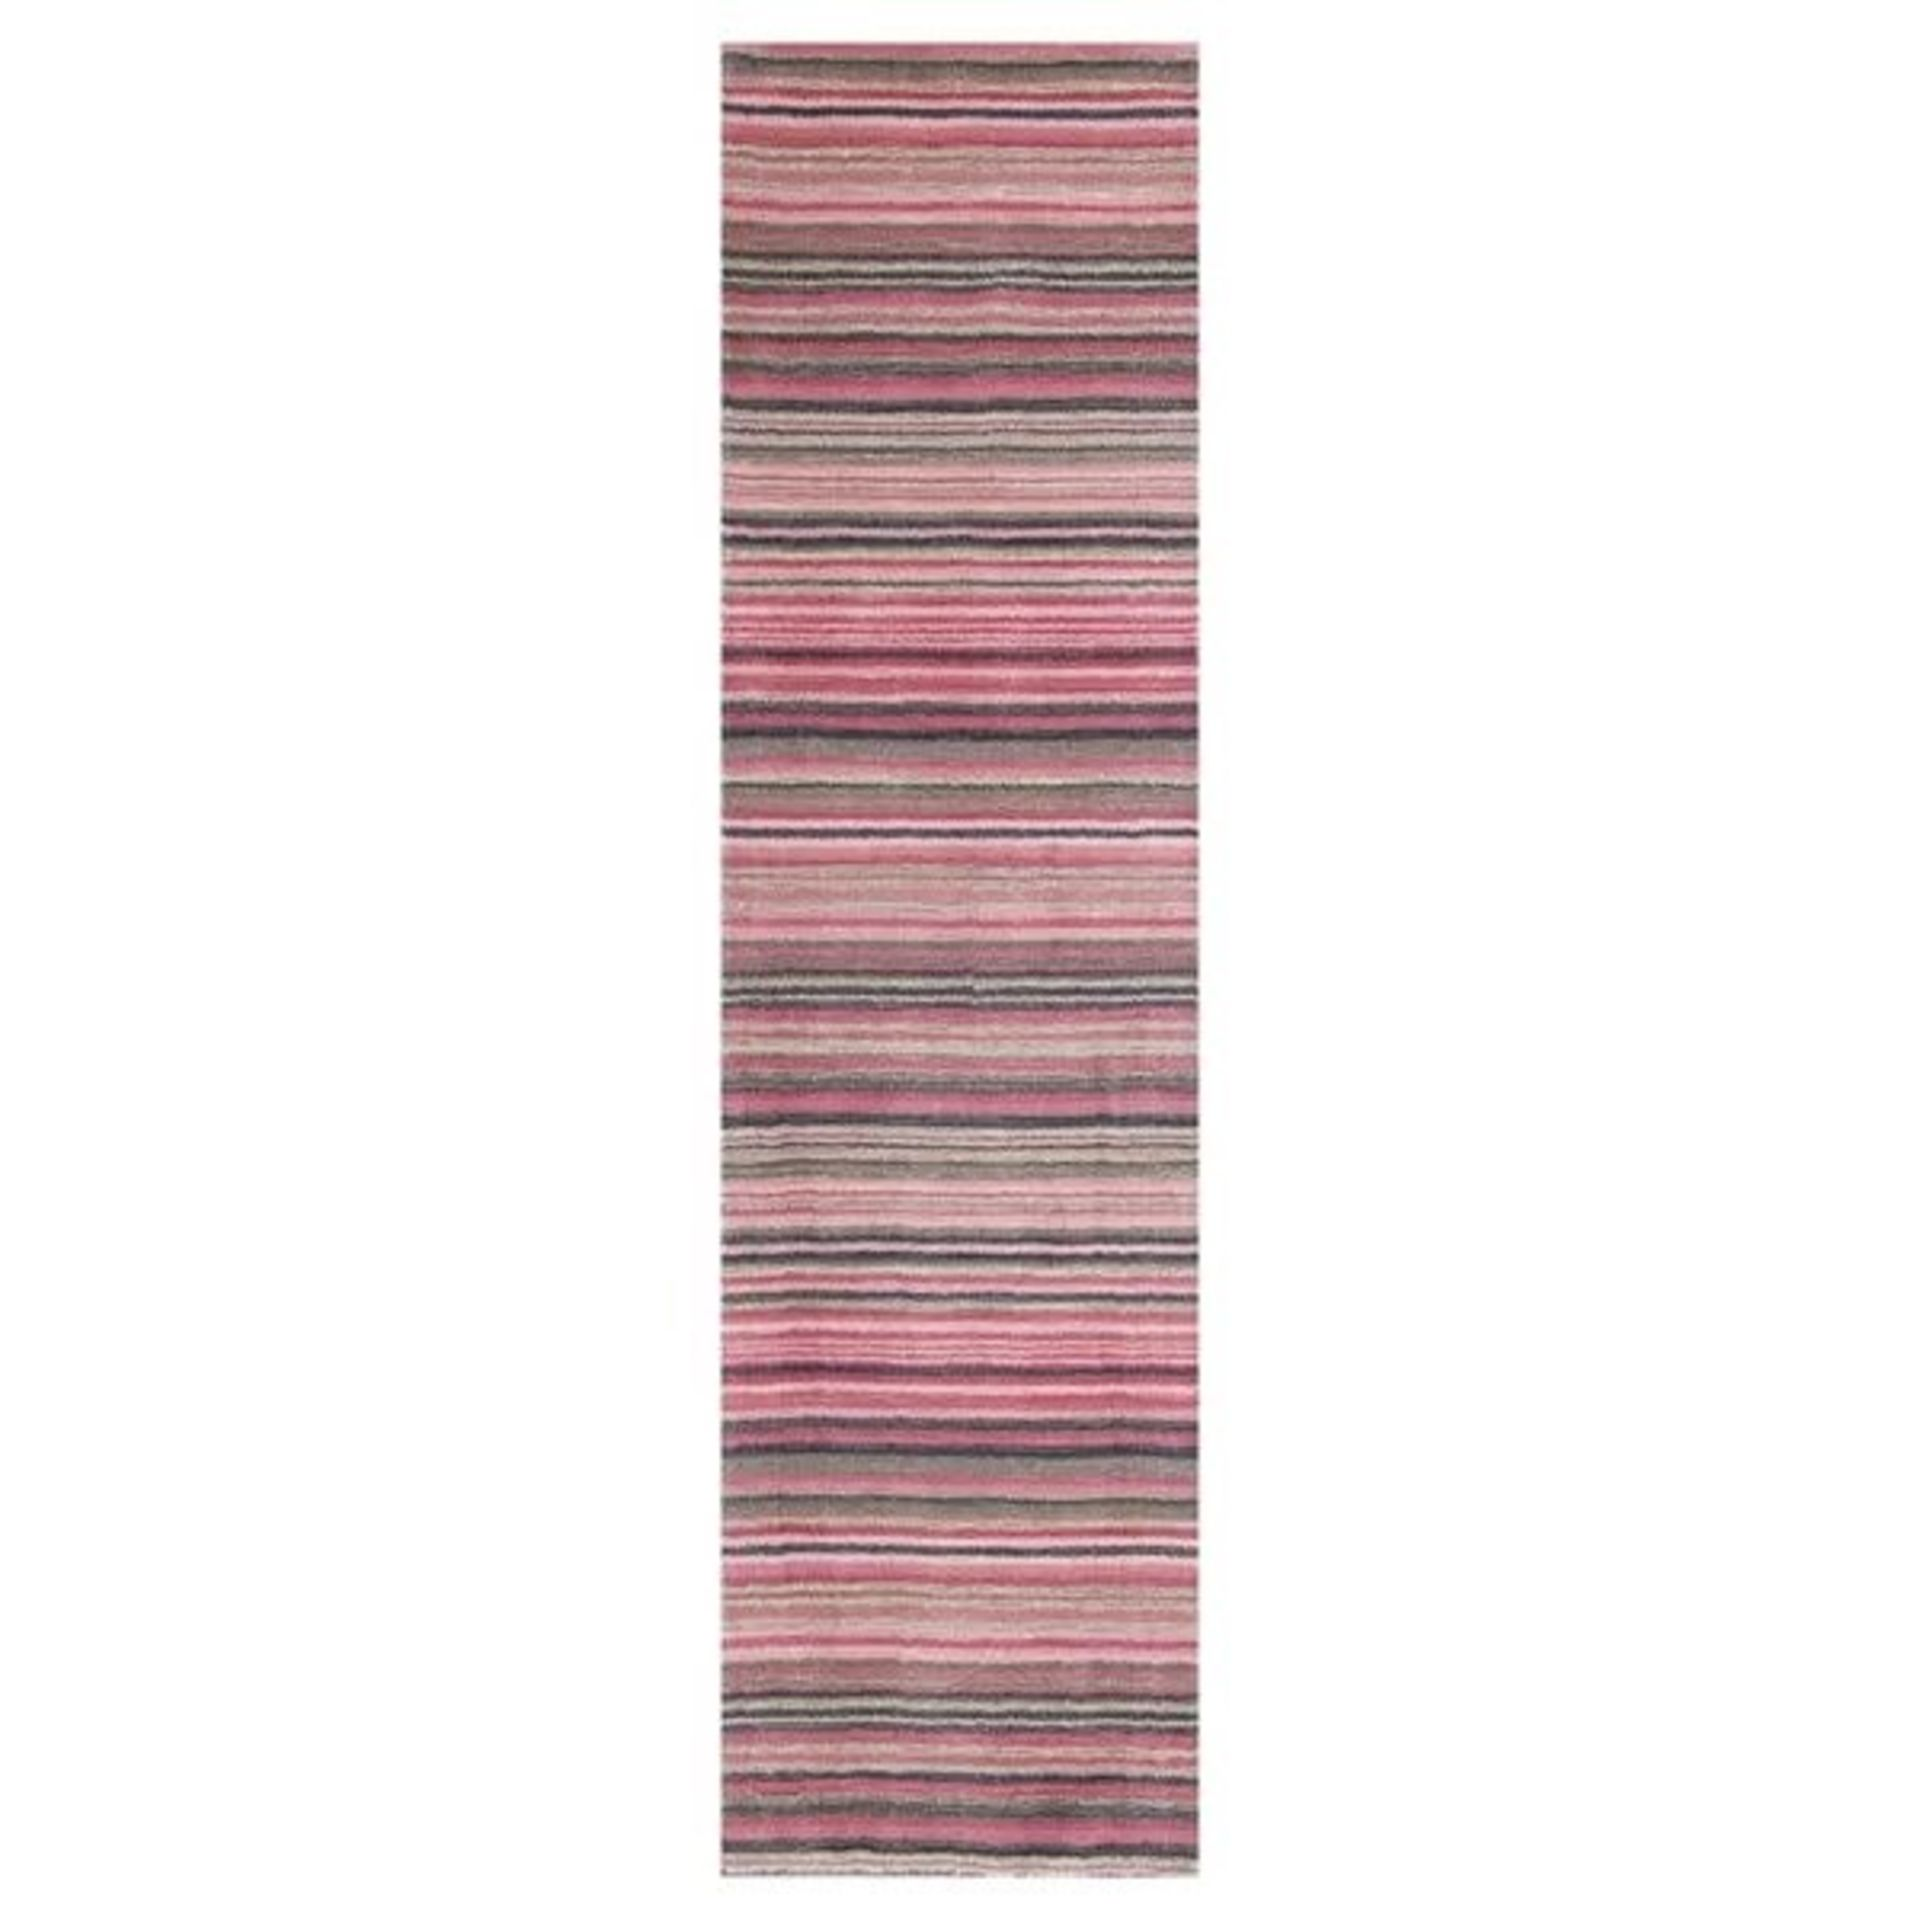 Mercury Row,Mager Hand Tufted Wool Pink Rug (60X230CM)RRP -£ 69.99(18267/13 -LOWV2384)